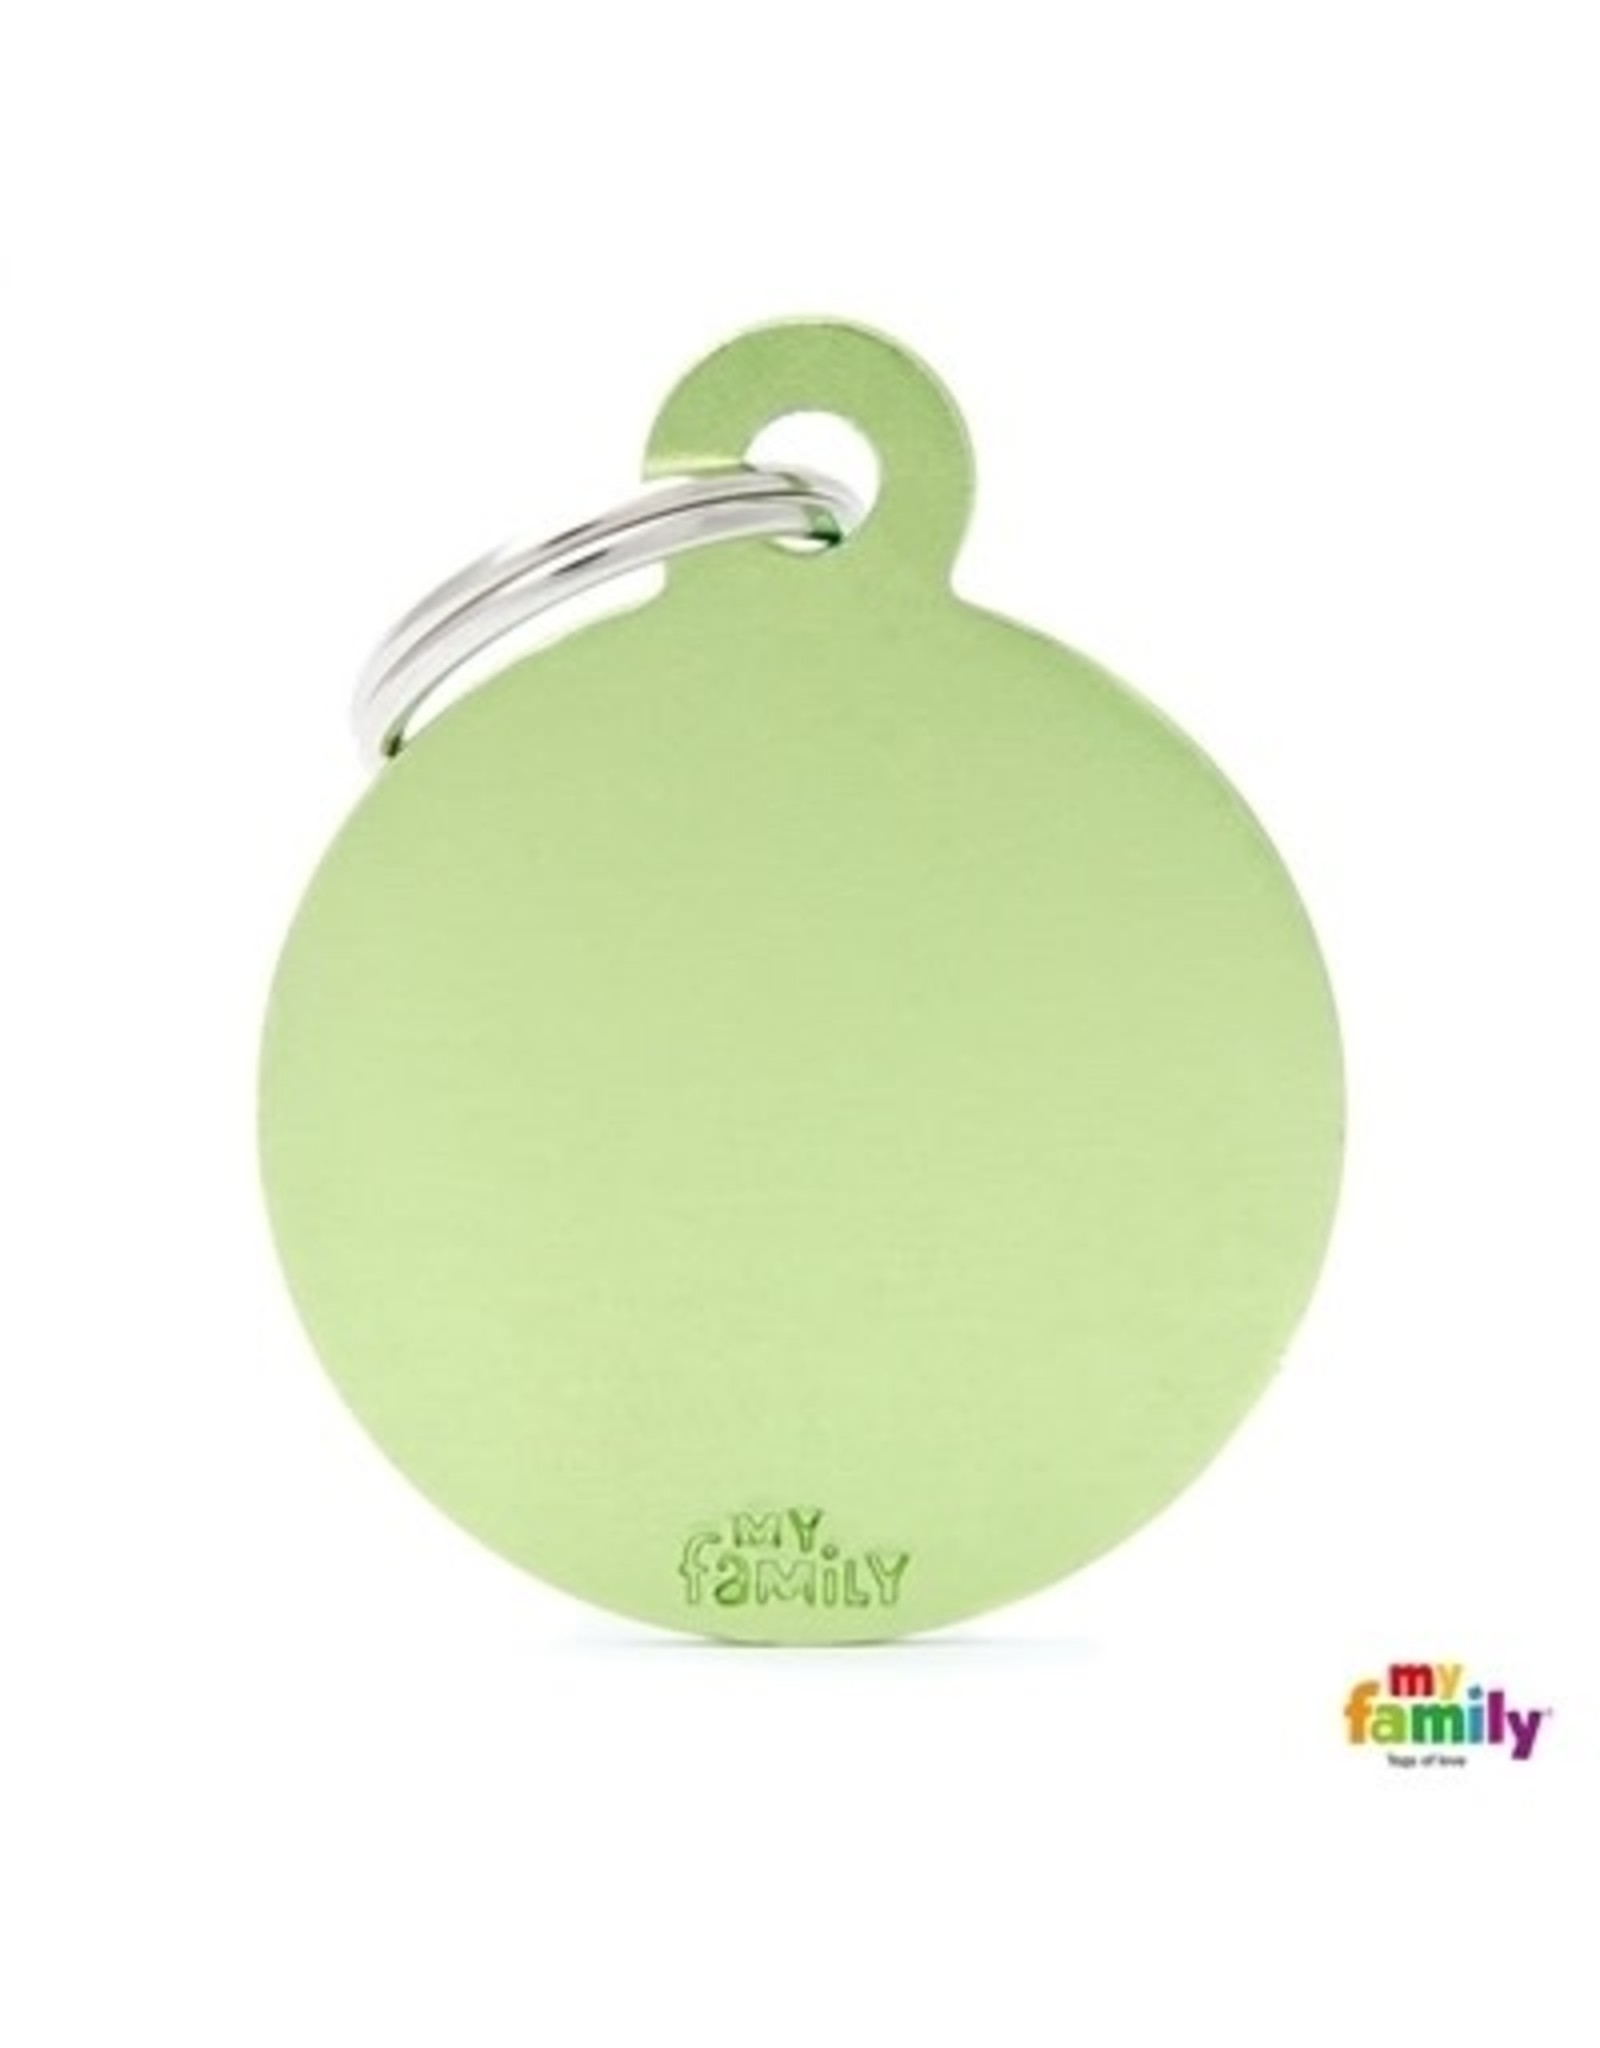 MyFamily Tag - Round Green